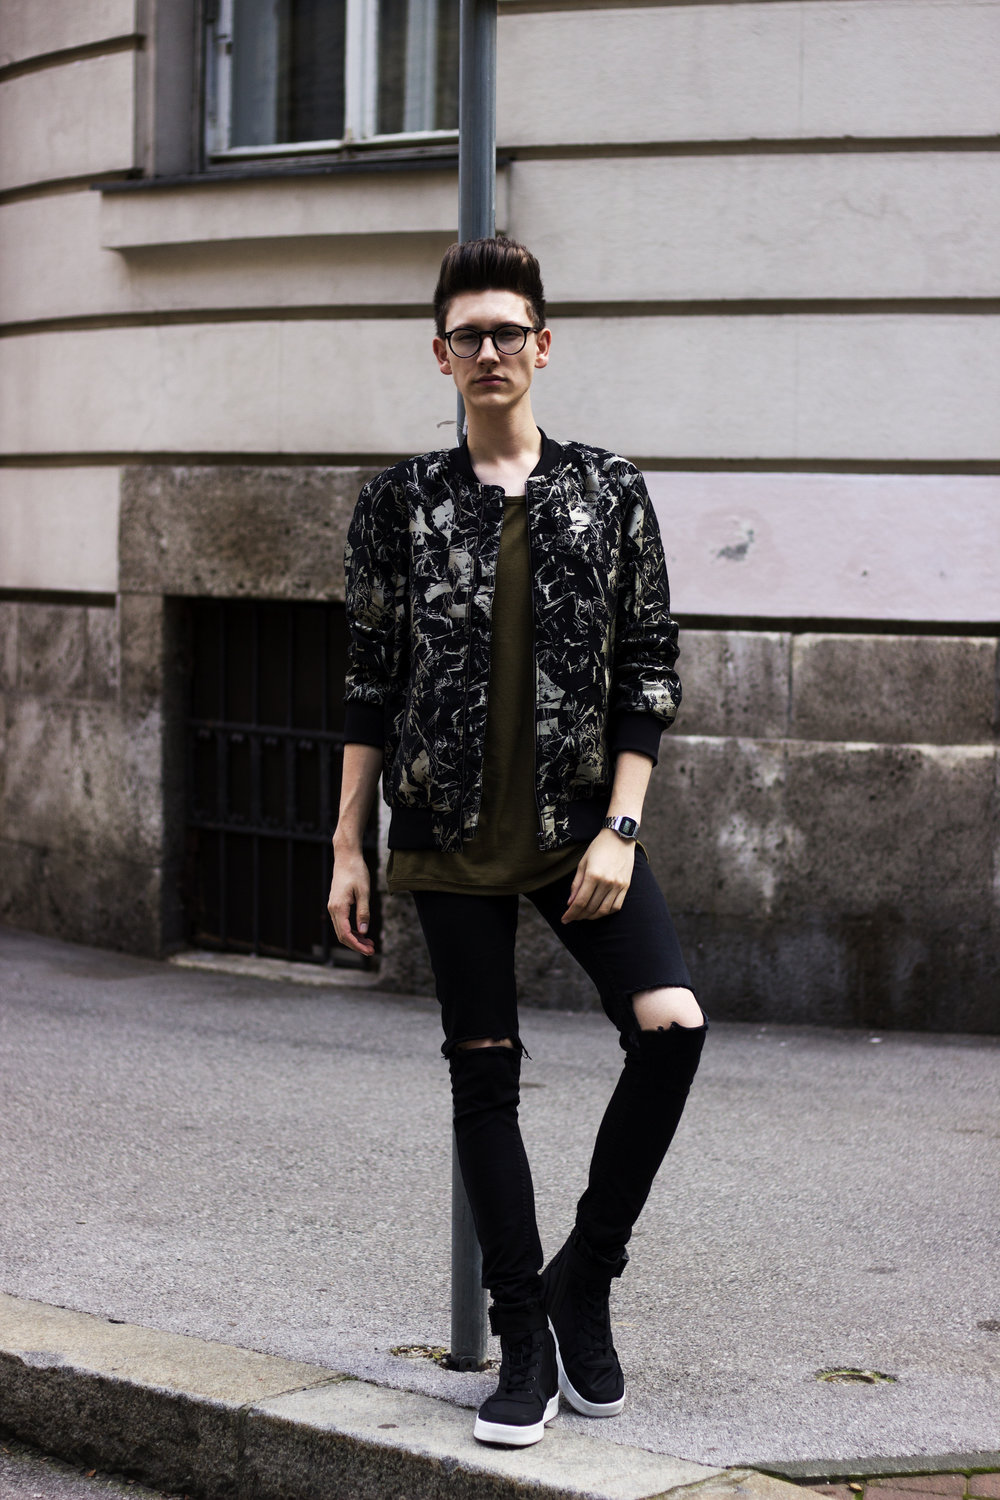 luka-lajic-expensive-reality-hm-mens-fashion-croatia-blogger (7).jpg